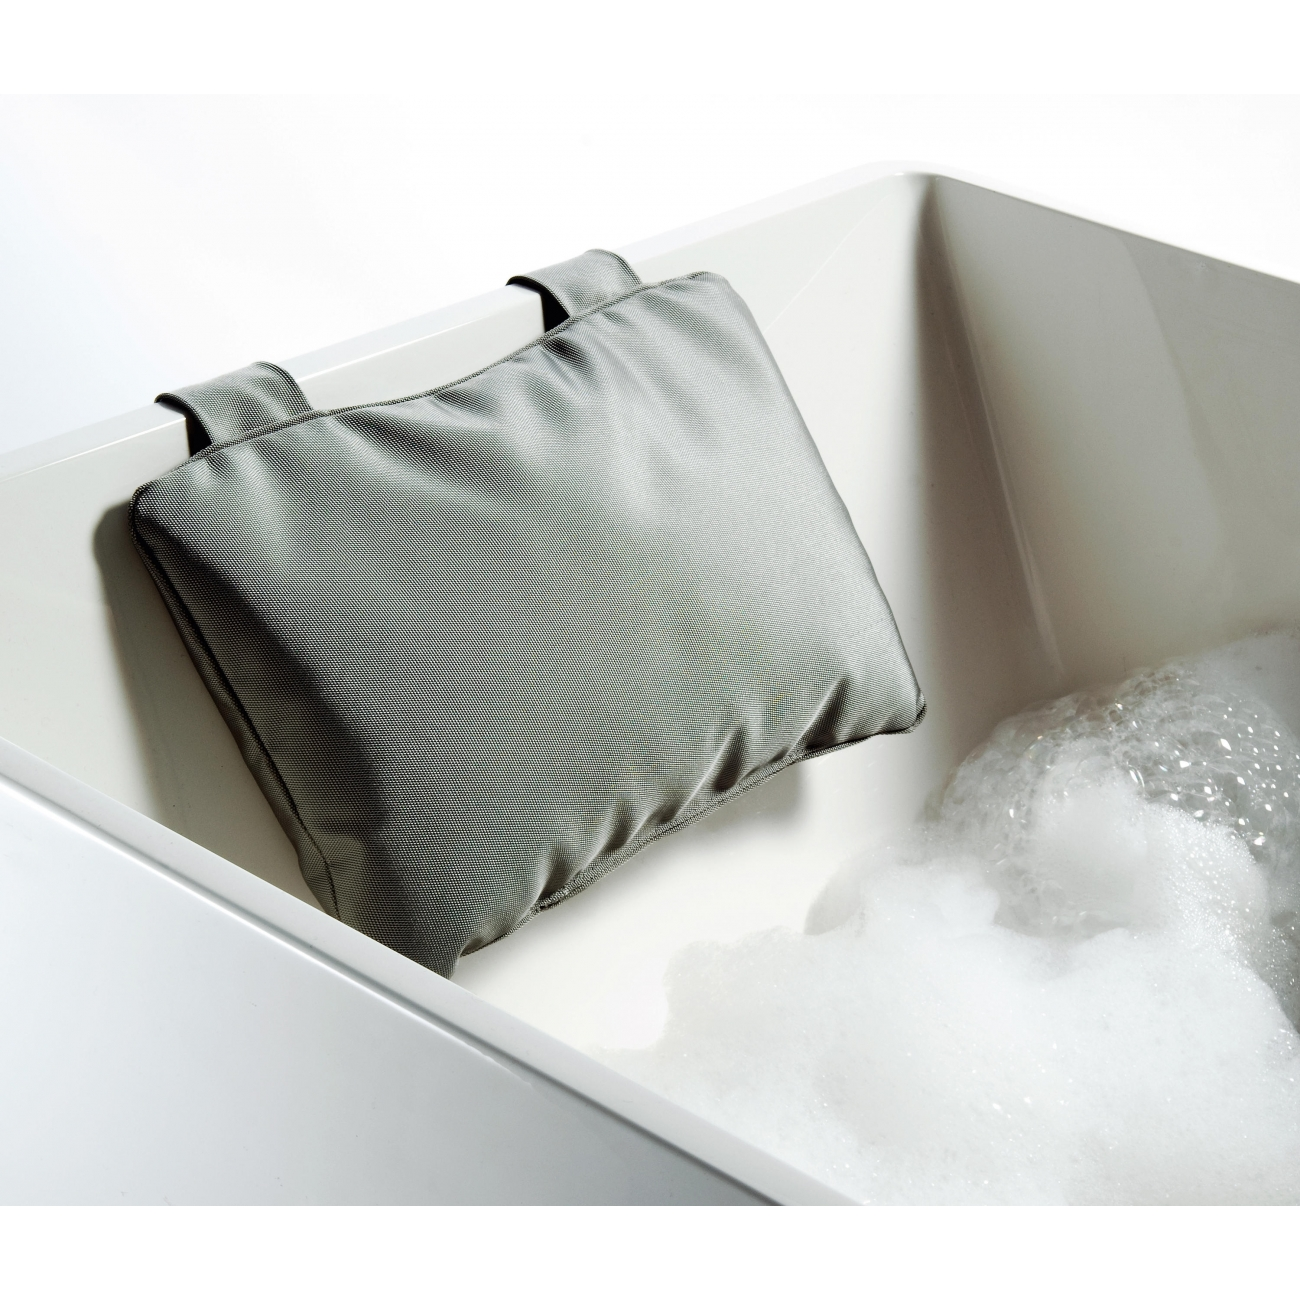 LOFT NK bath pillow nylon